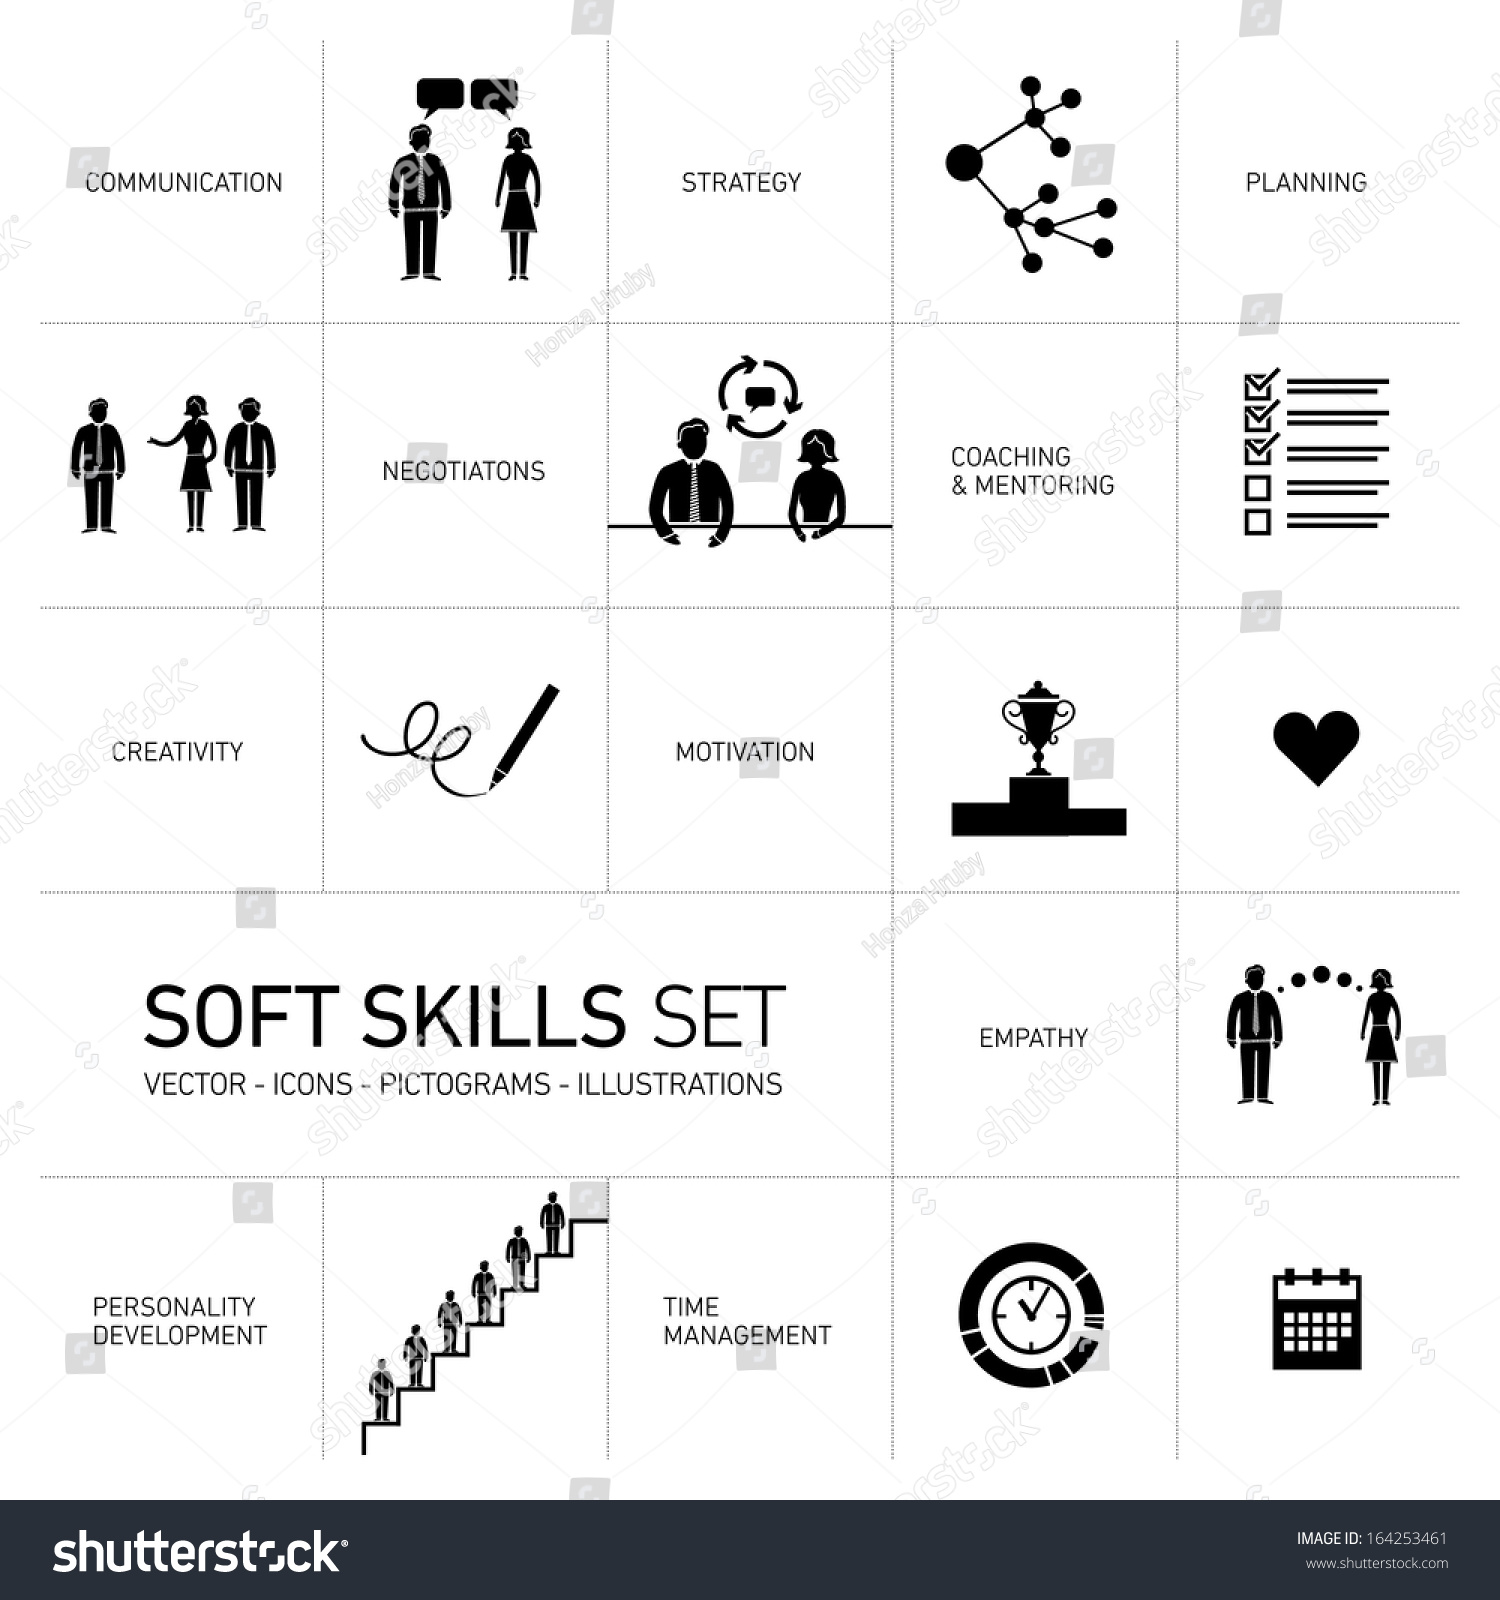 soft skills vector icons pictograms set stock vector 164253461 soft skills vector icons and pictograms set black on white background